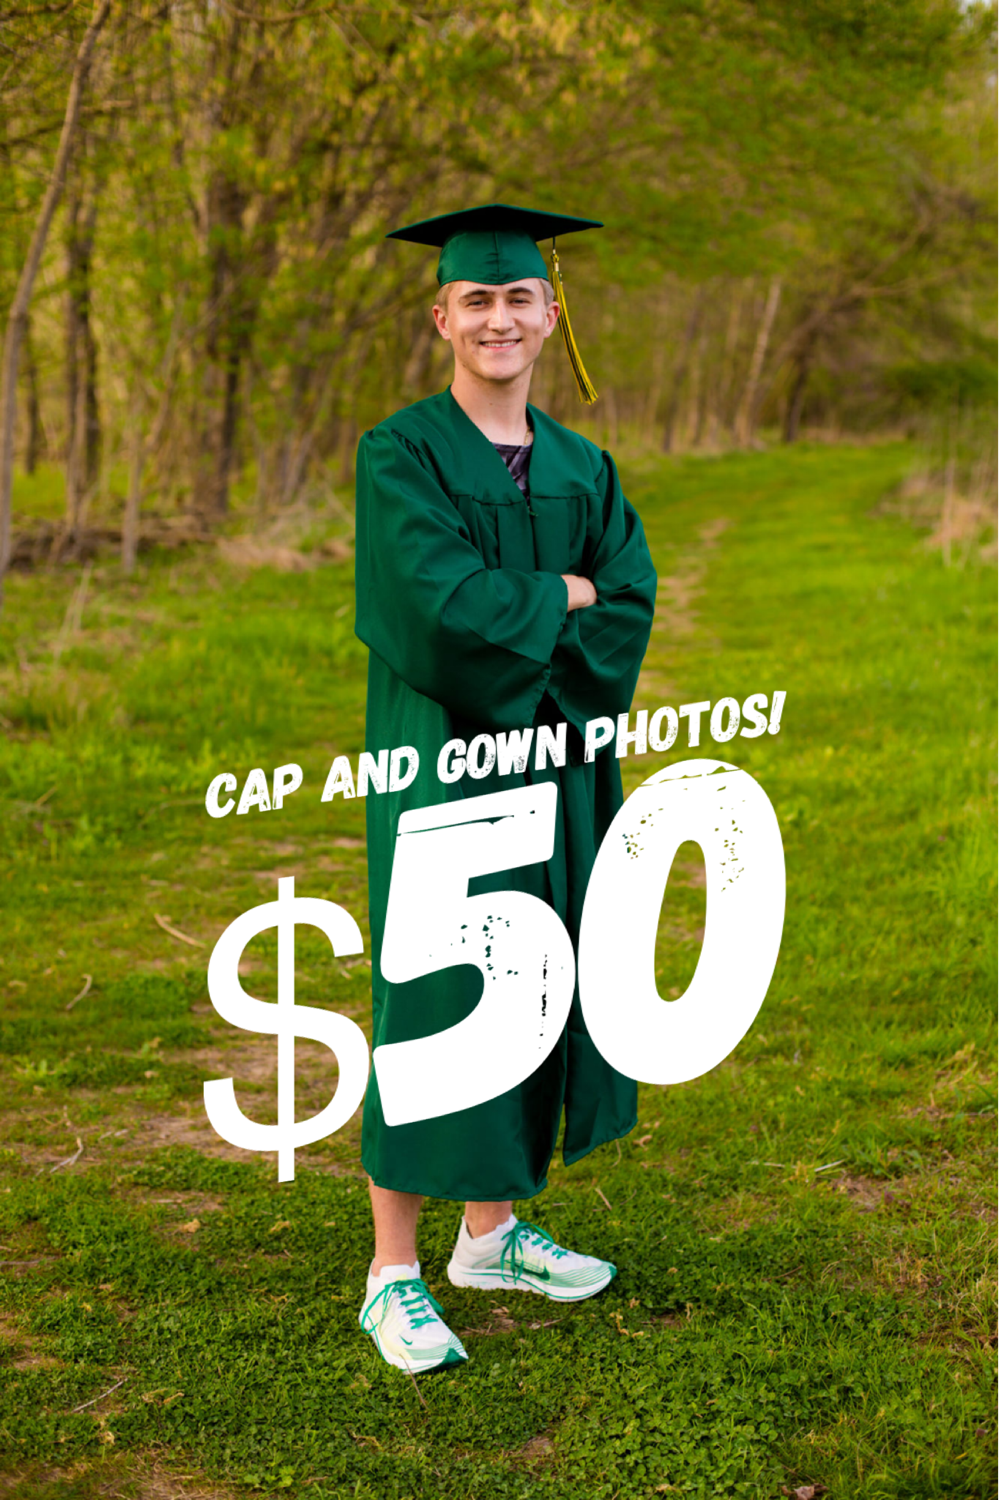 Cap and gown session